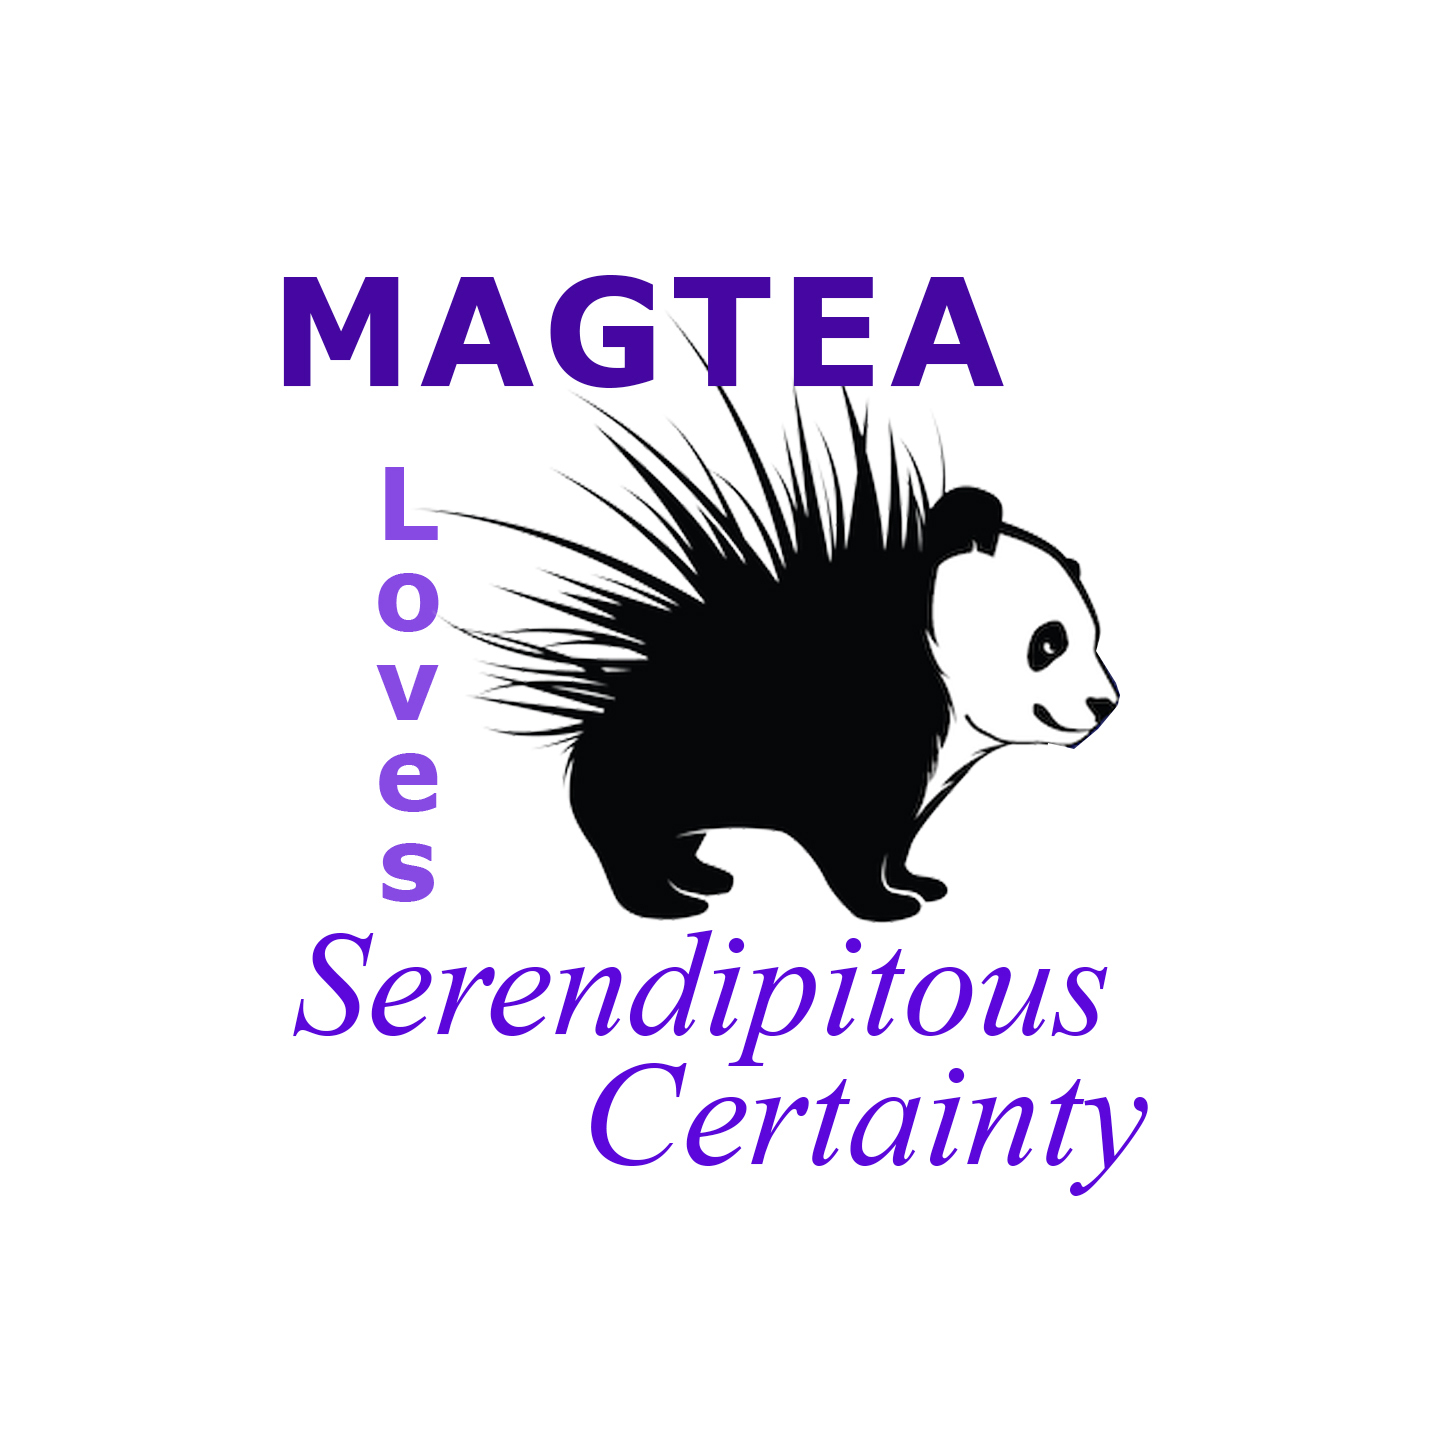 TEAM MAGTEA Loves Serendipitious Certainty GISHWHES